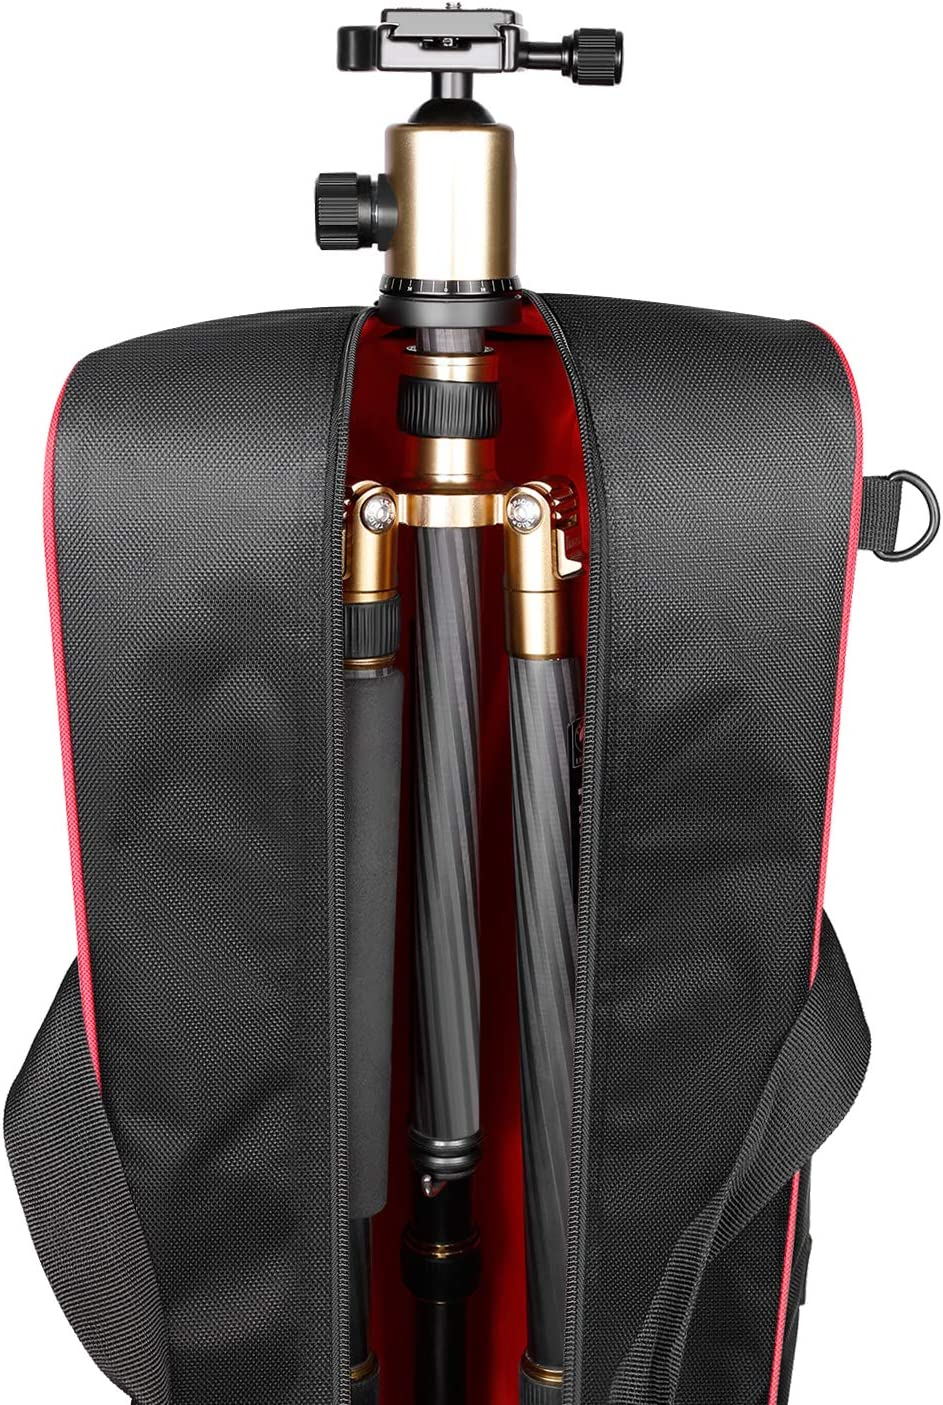 Boom Stand and Tripod Neewer 35x7x8//90x18x20cm Padded Carrying Bag with Strap for Manfrotto,Sirui,Vanguard,Ravelli and Dolica Series Stands and Other Universal Light Stands